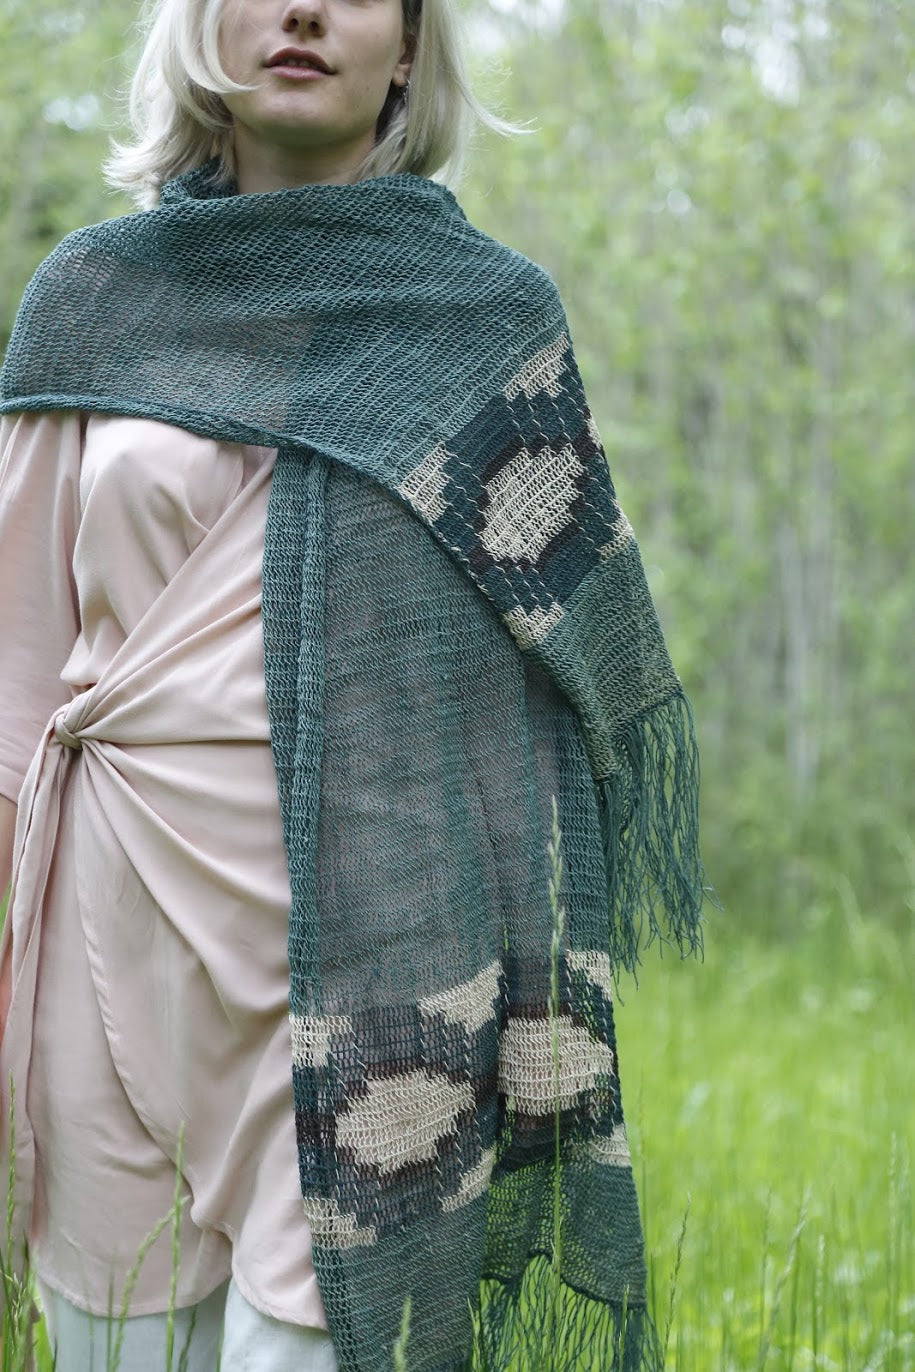 Dark Green Chaguar Shawl with Cream Design Details and Fringe ends.